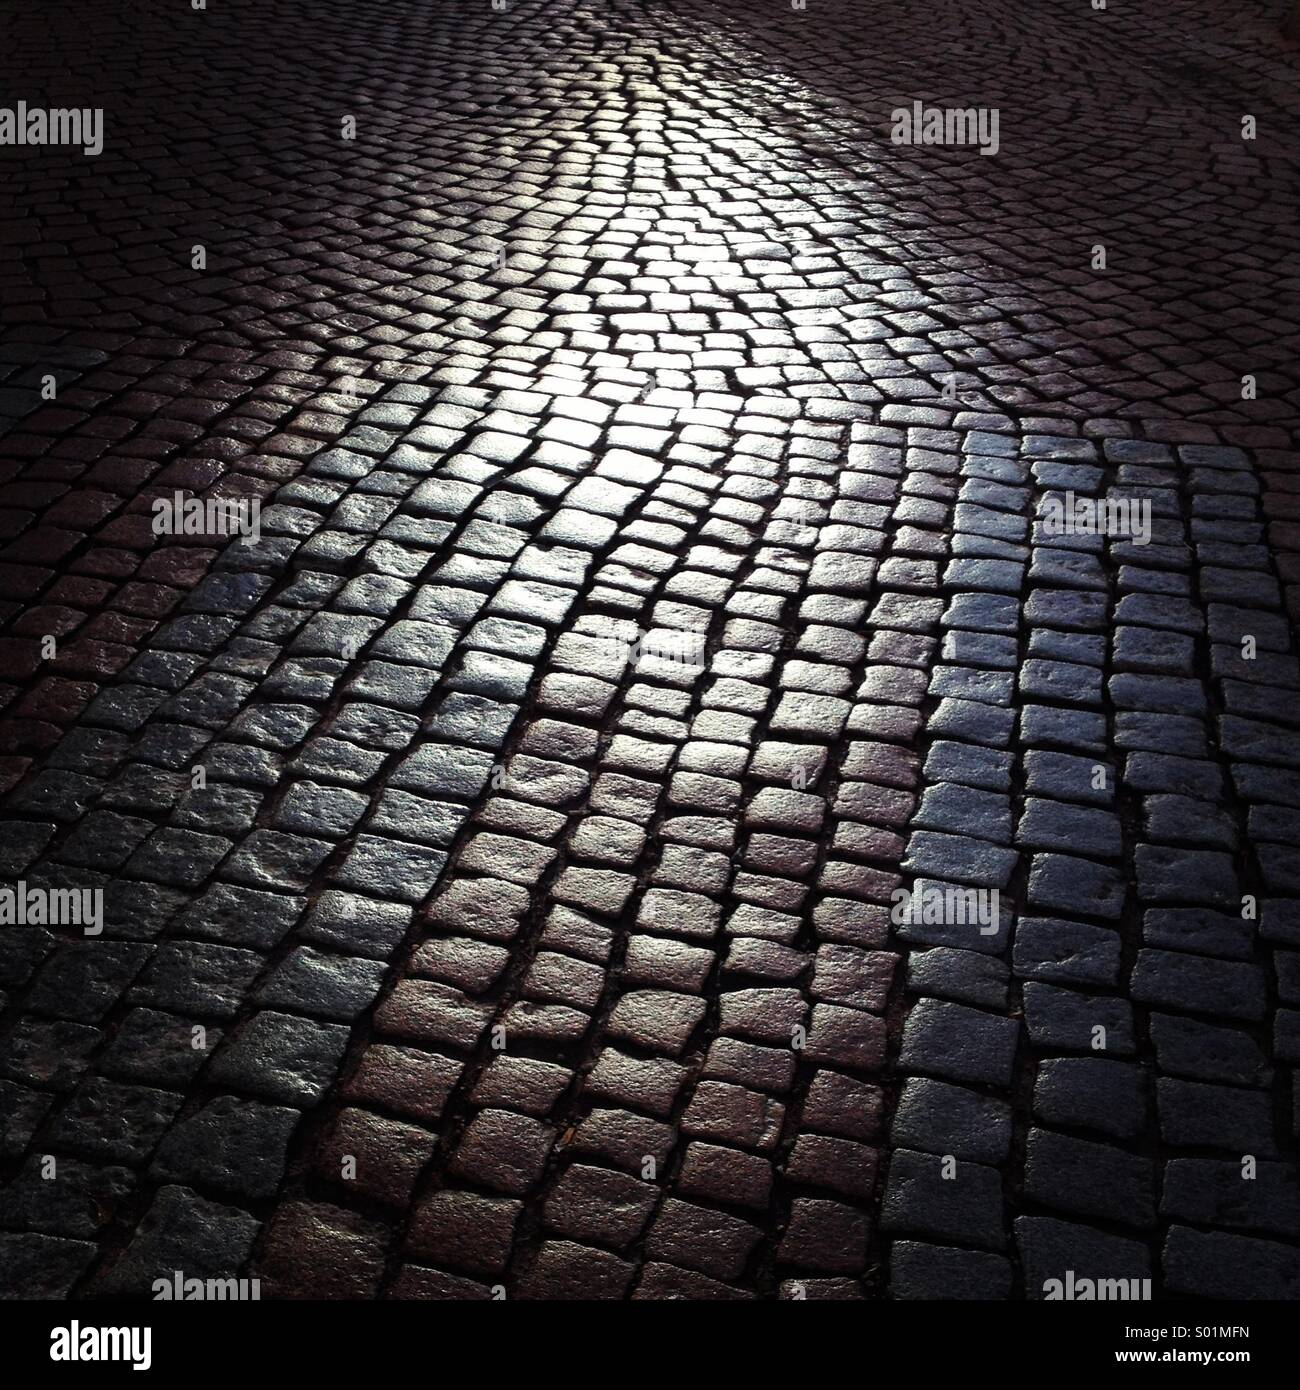 A wet cobbled street shining in sunlight - Stock Image